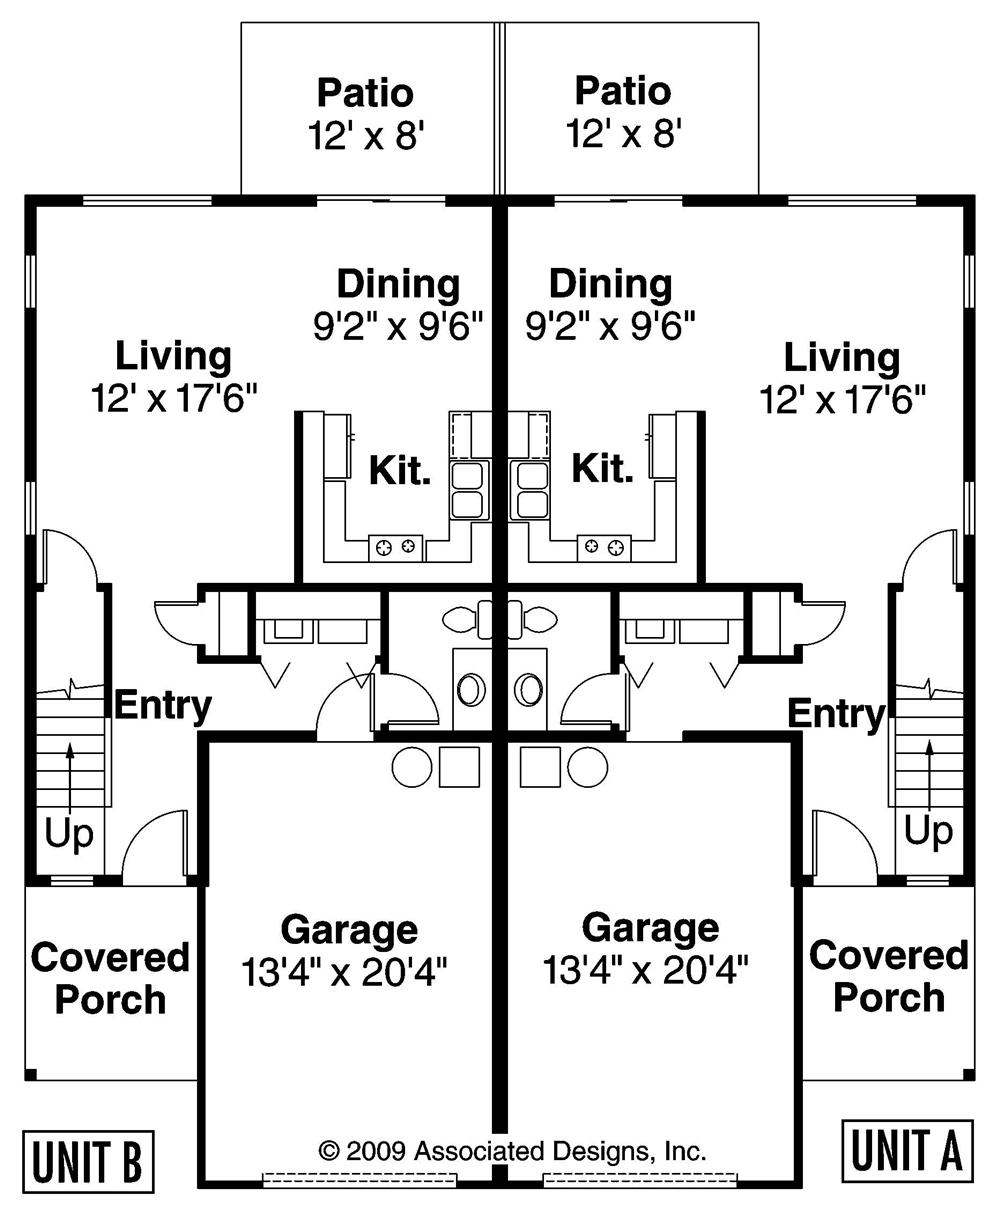 Large Images For House Plan 108 1047